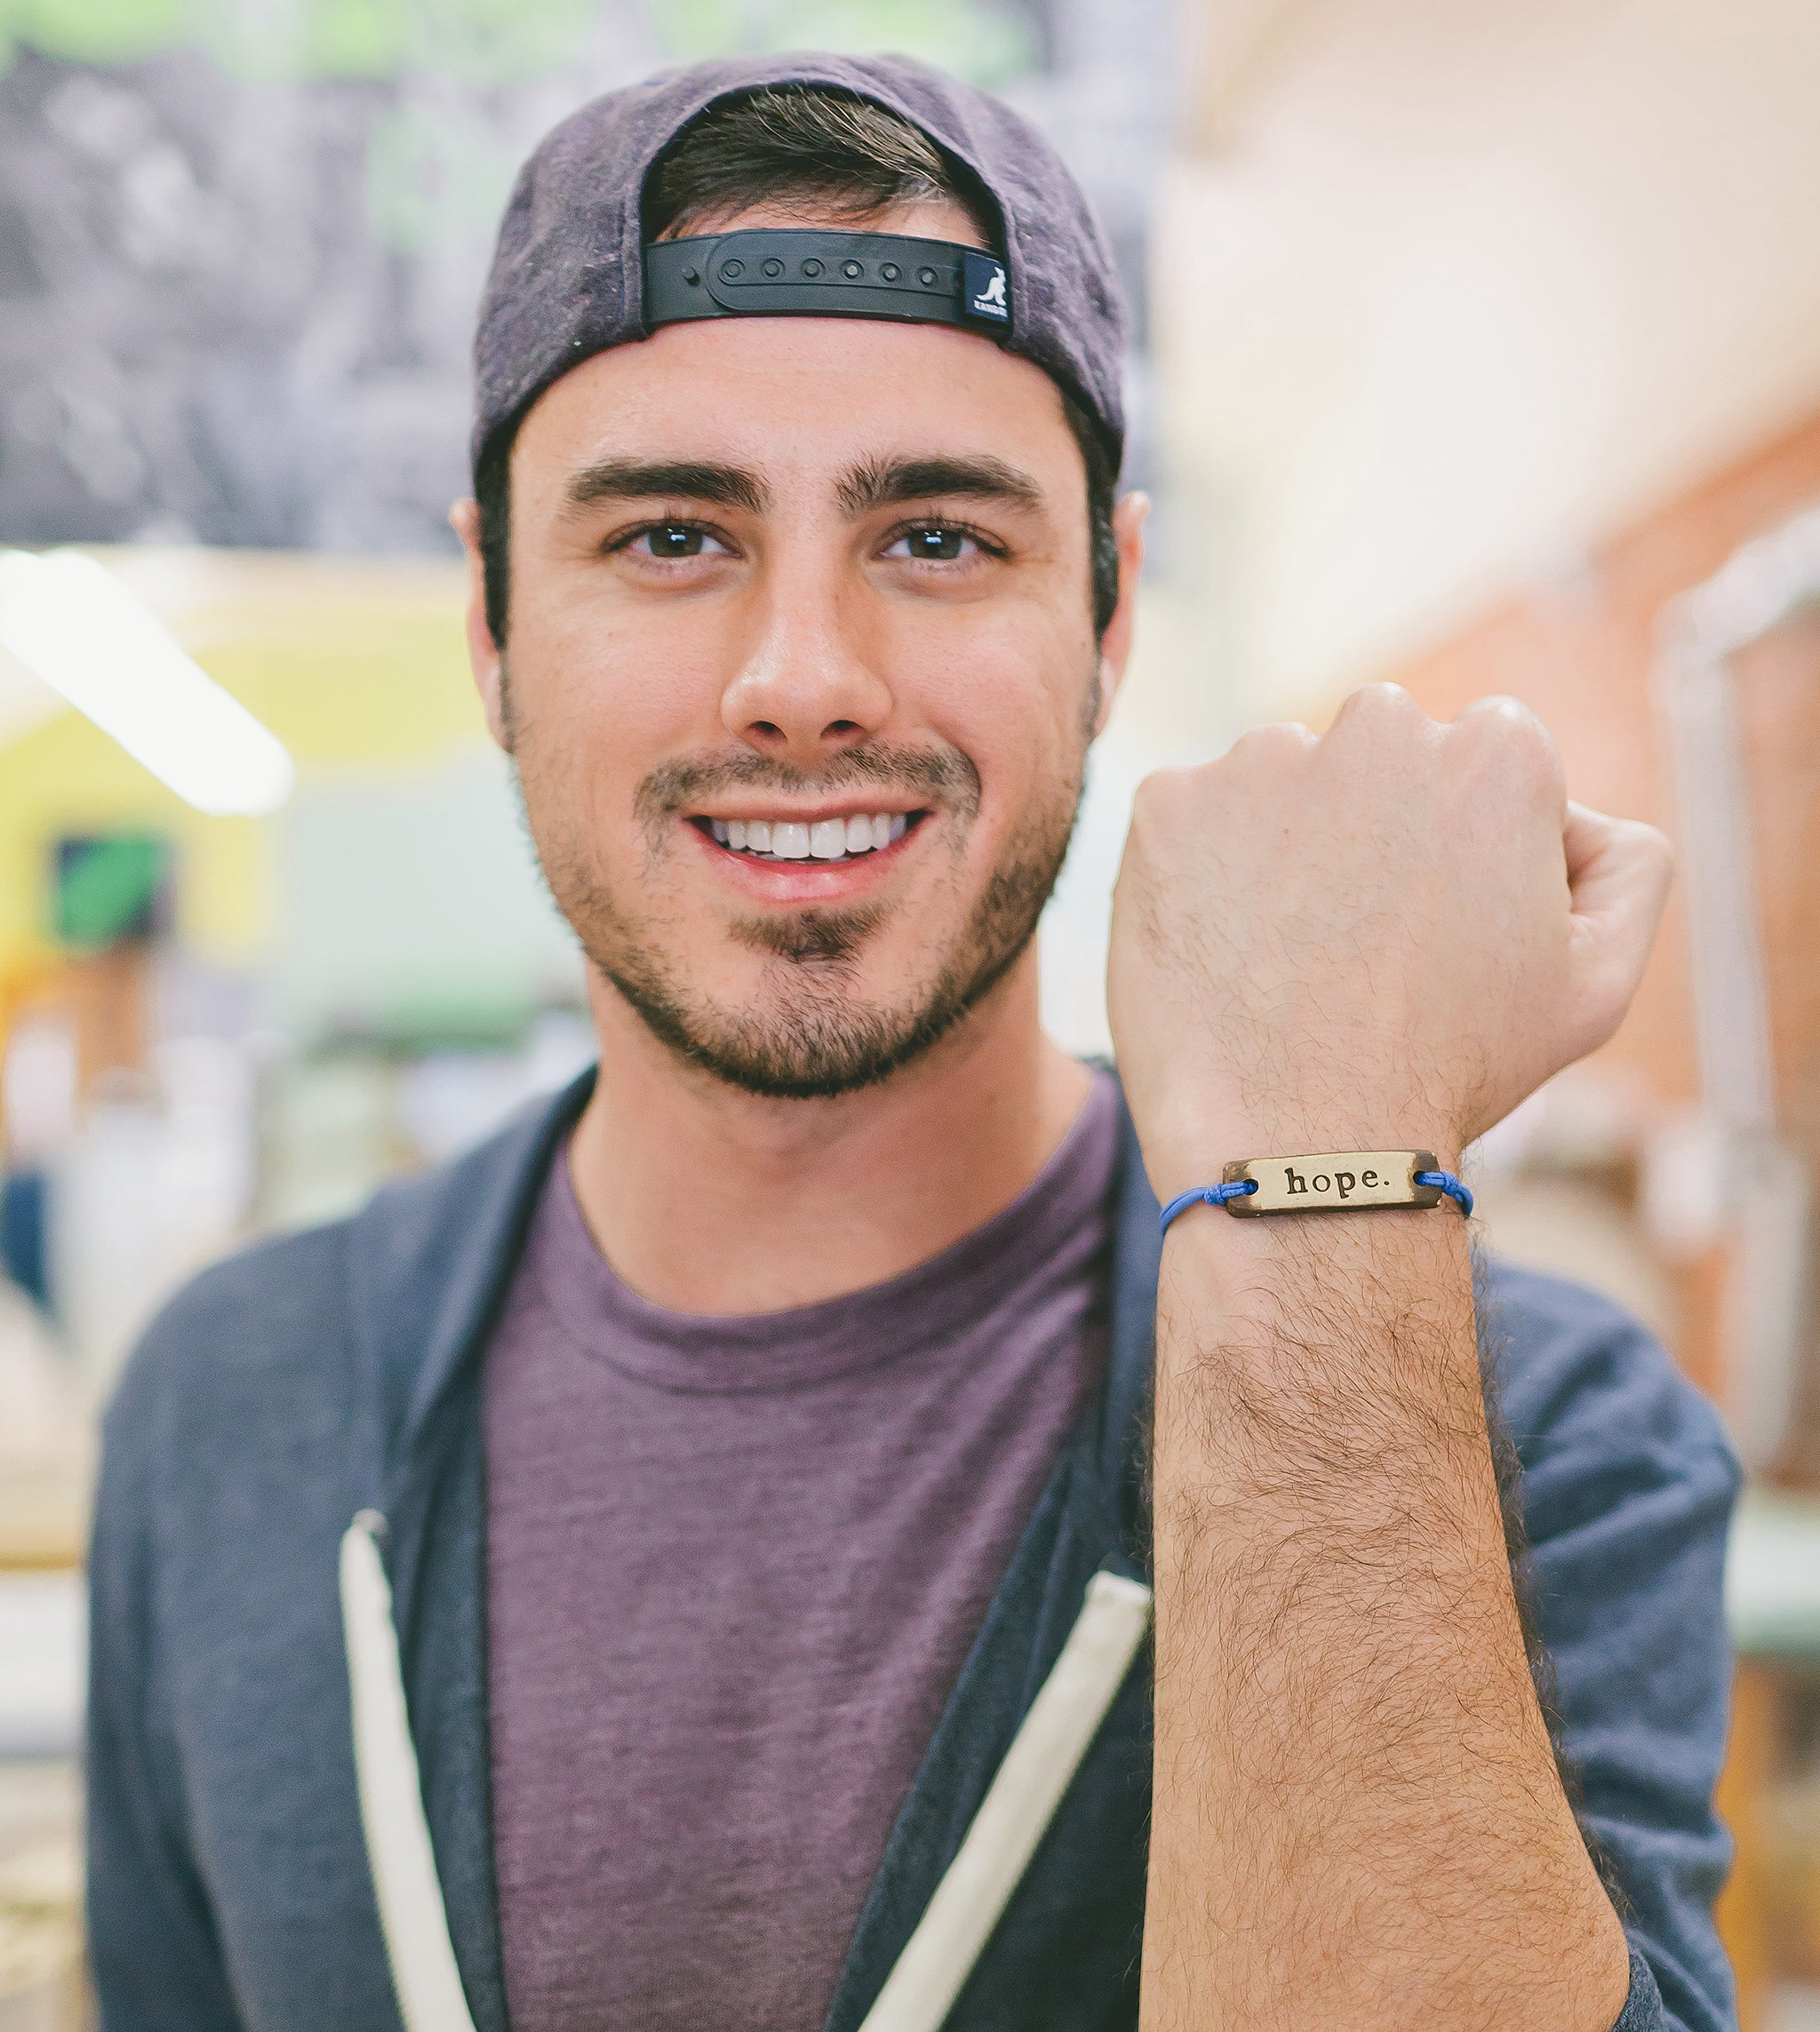 Ben Higgins hope bracelet